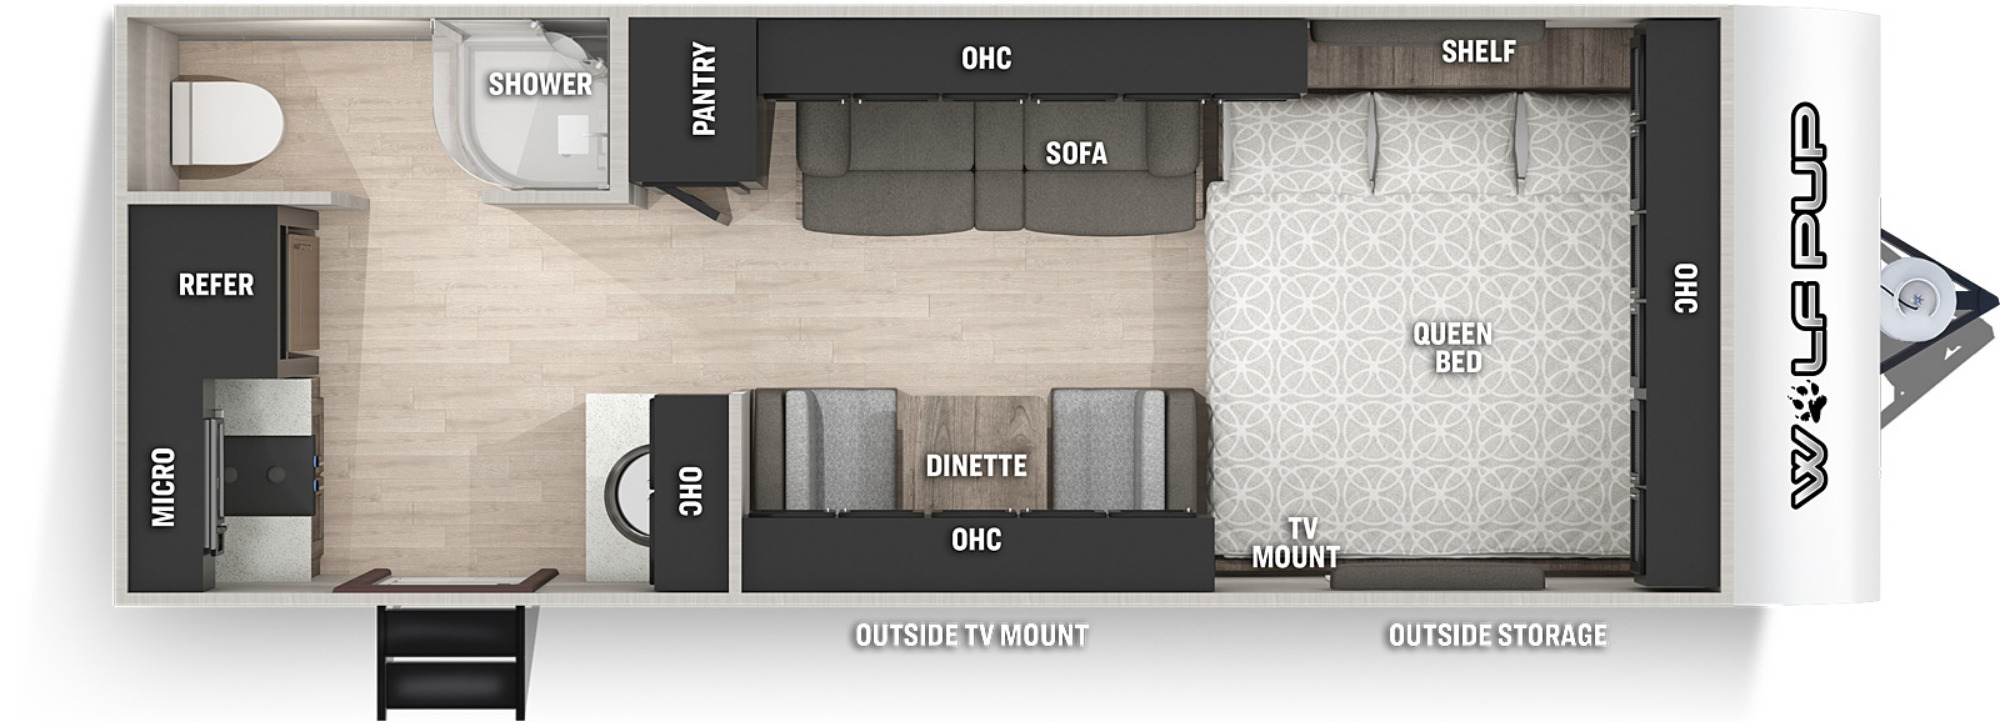 View Floor Plan for 2021 FOREST RIVER WOLF PUP BLACK LABEL 16HEBL